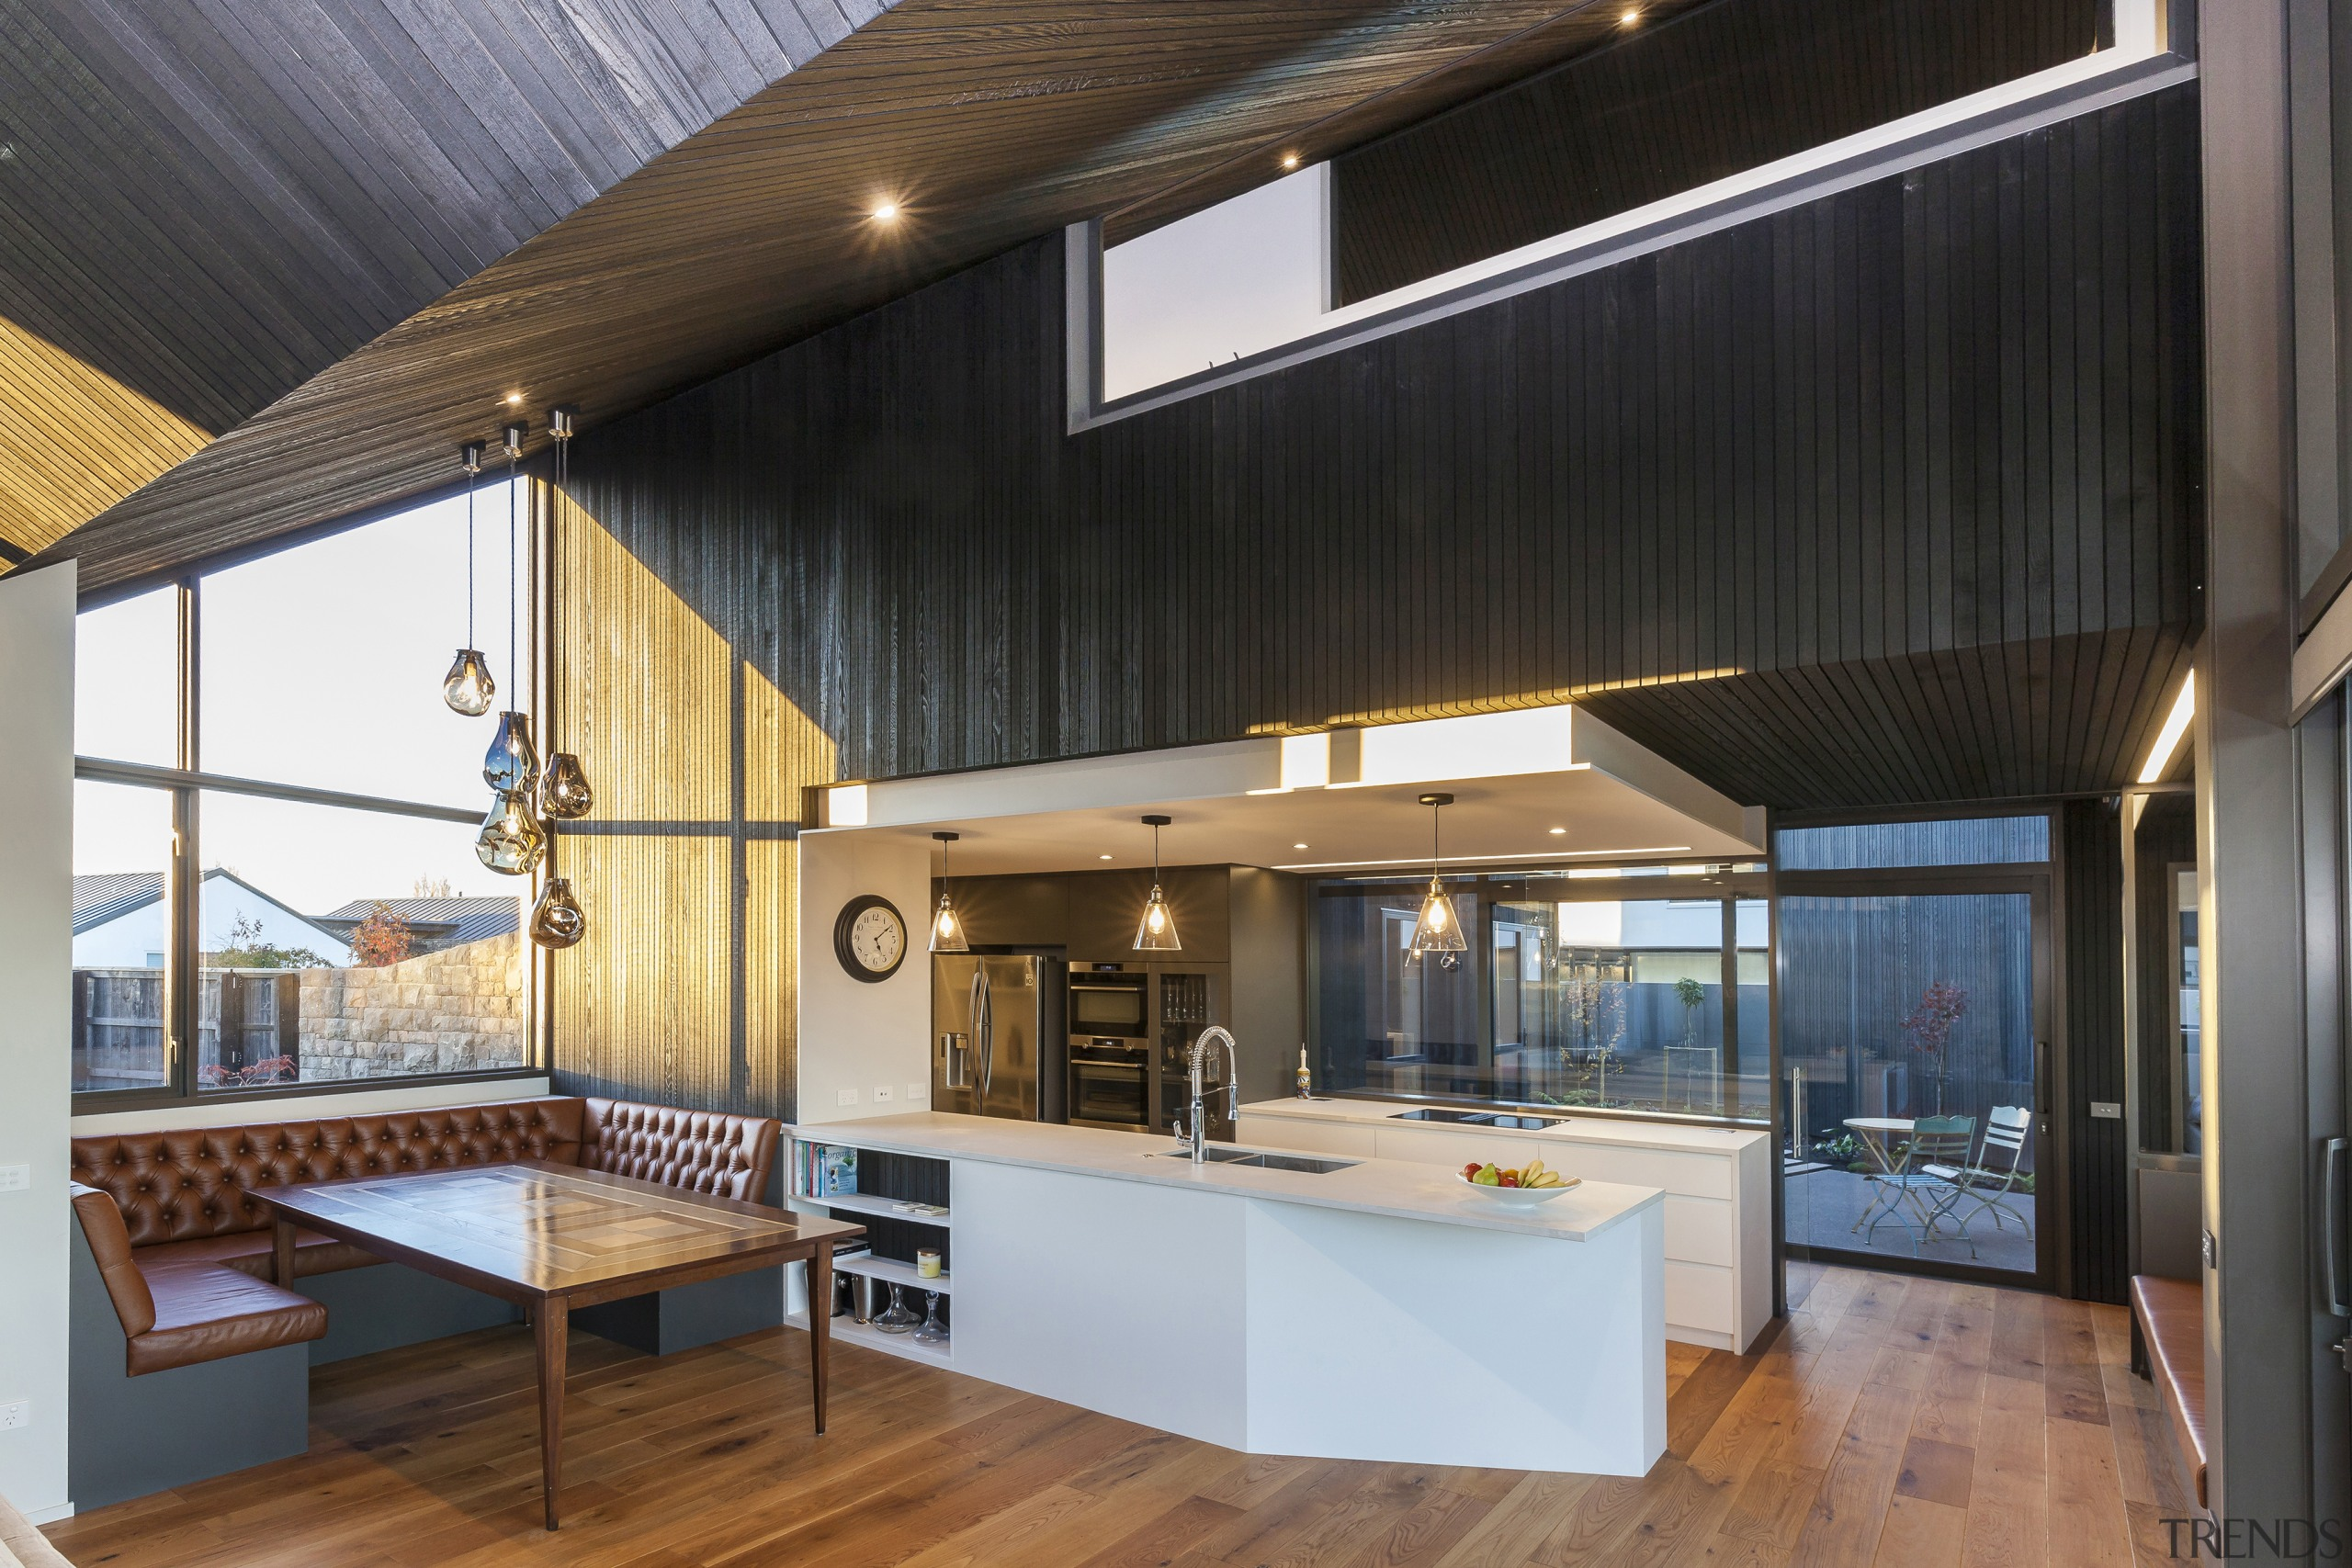 The timber ceiling, responding to the roofline, gives